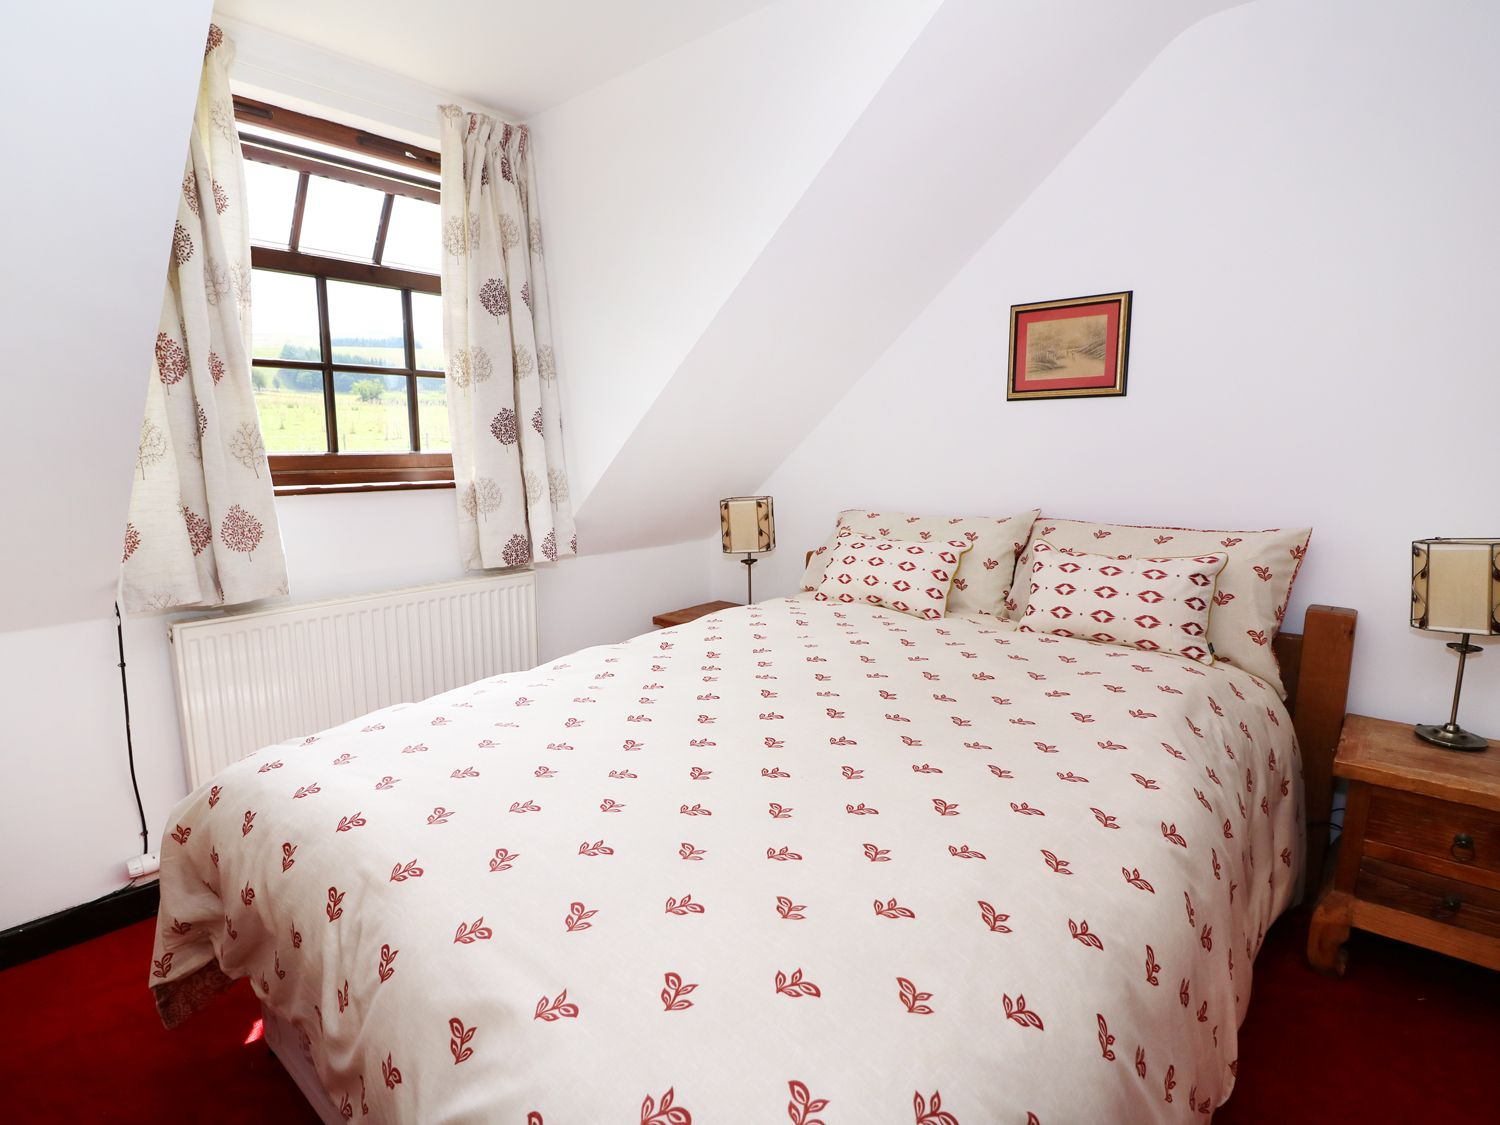 Lily Pond Cottage | St Harmon | Esgair | Self Catering Holiday Cottage